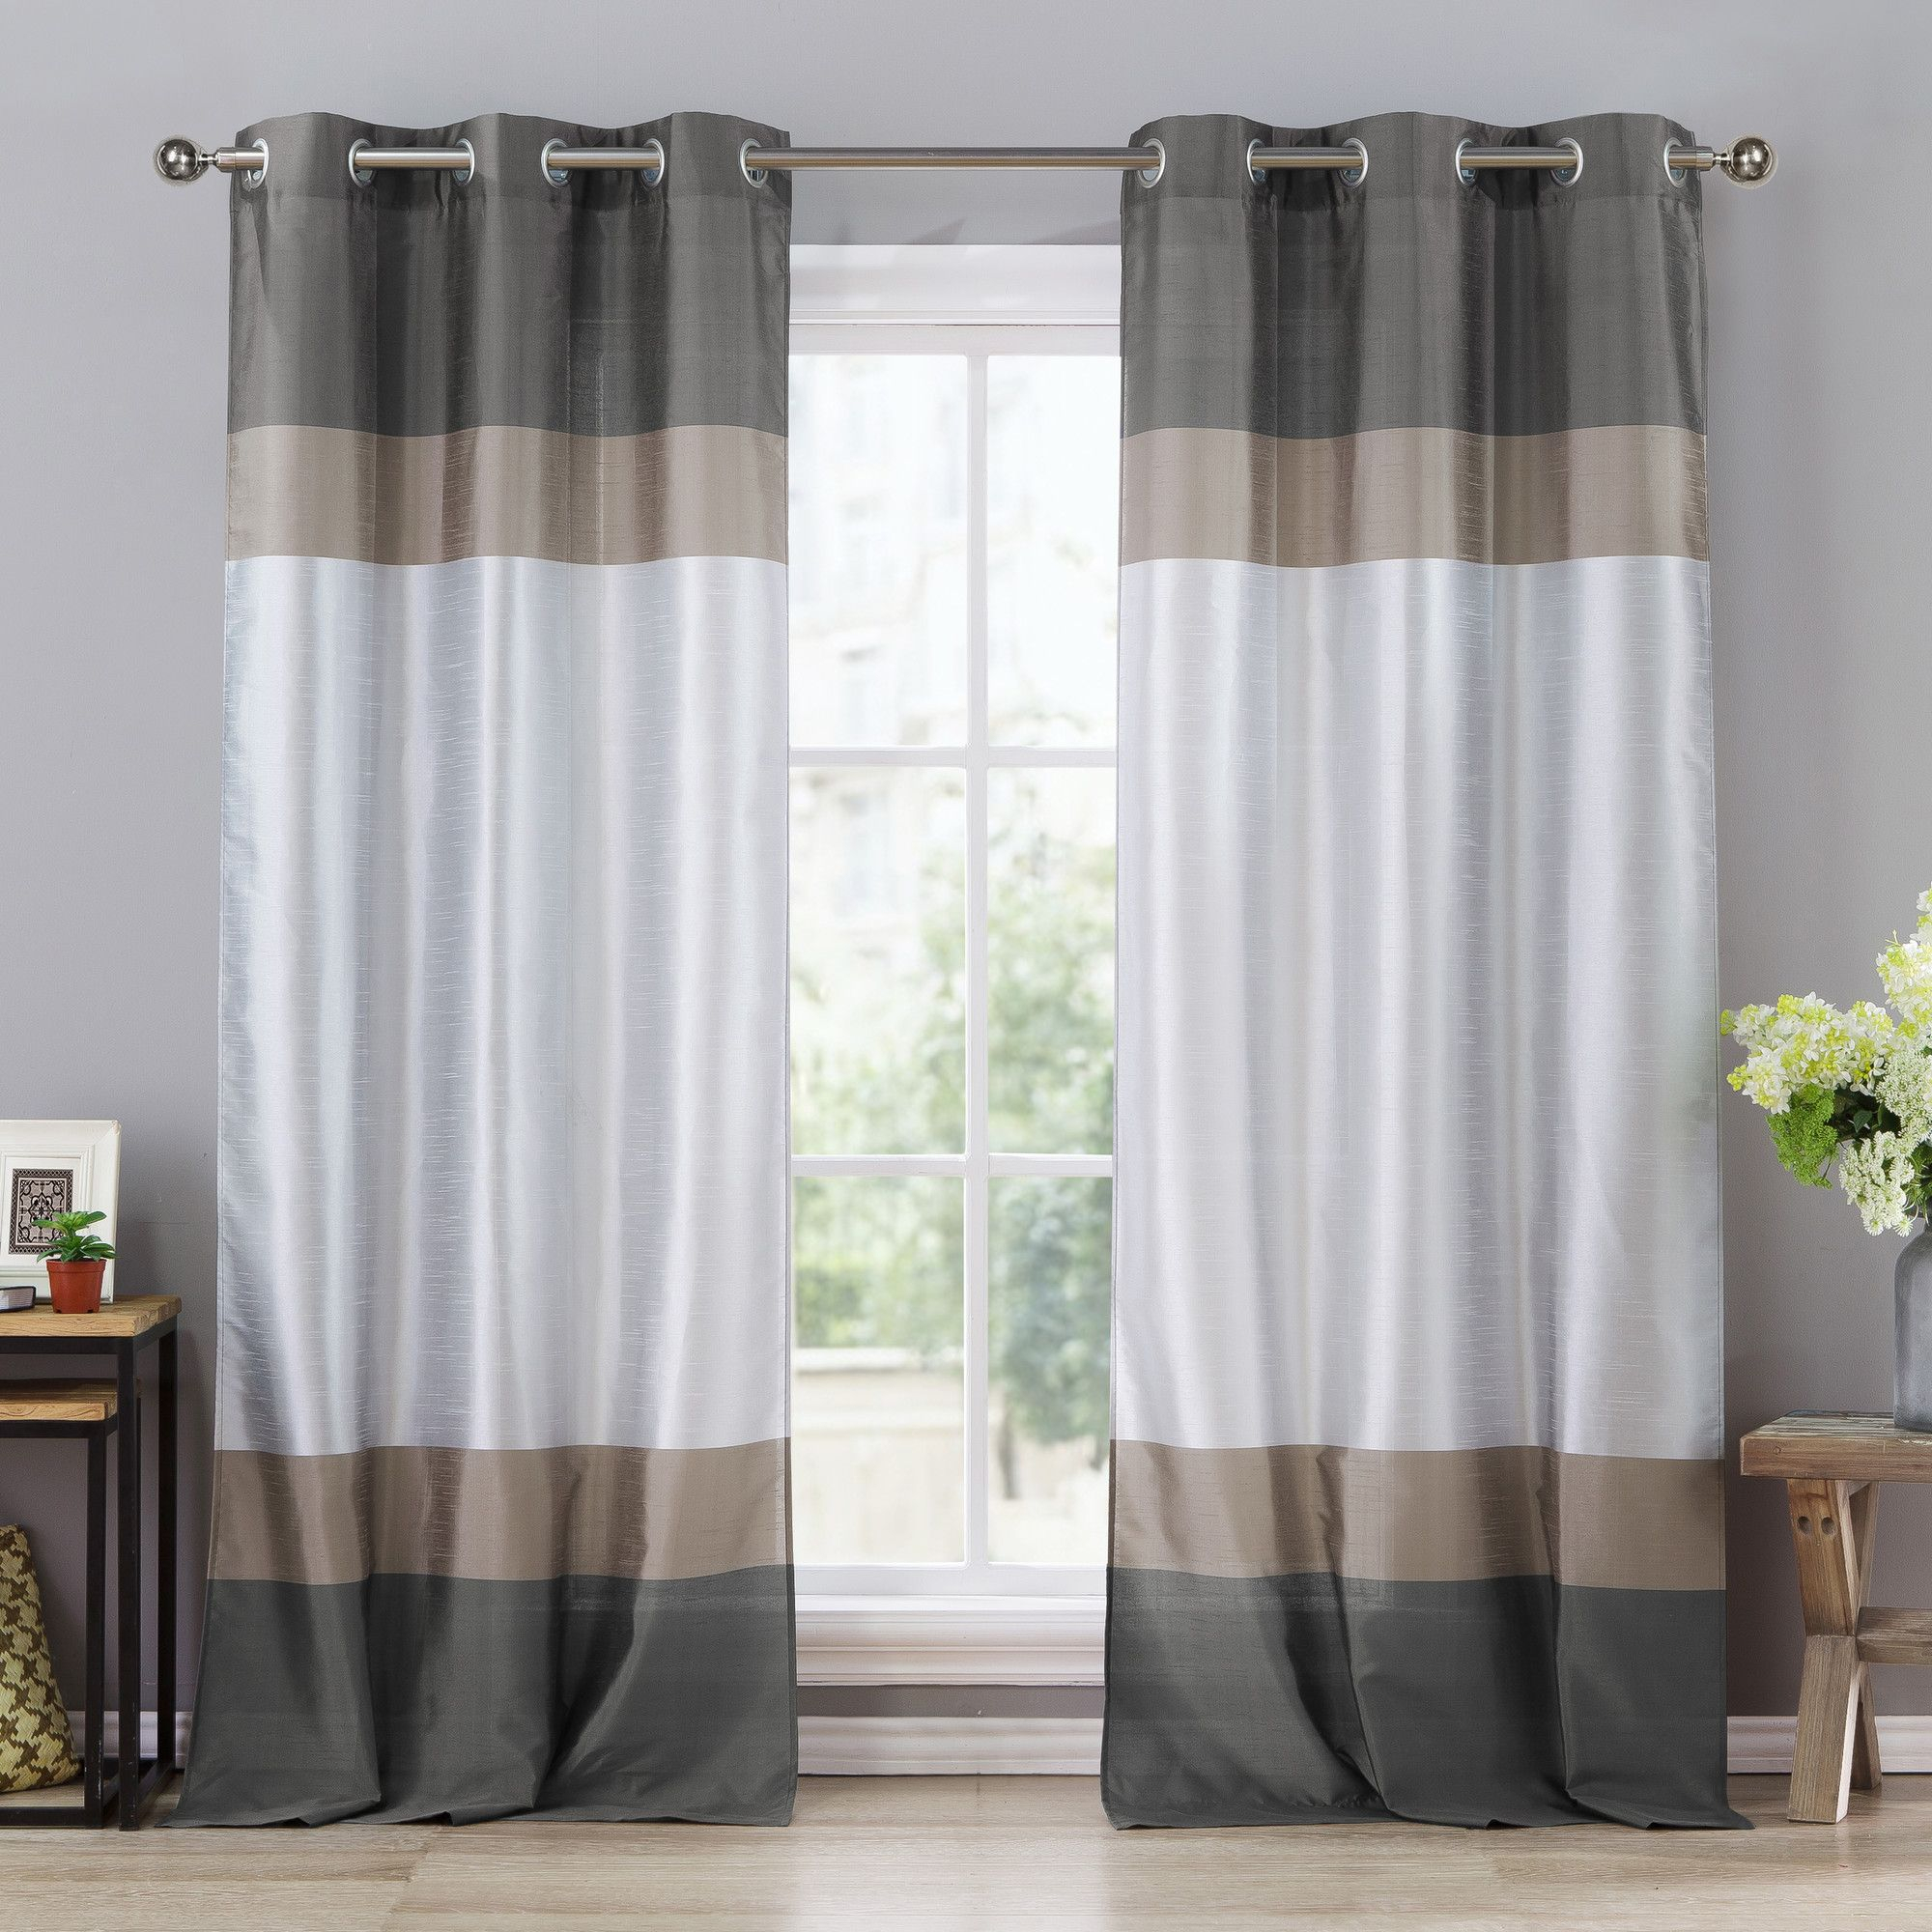 Everson Grommet Curtain Panel | Curtains | Pinterest With Chester Polyoni Pintuck Curtain Panels (View 15 of 20)